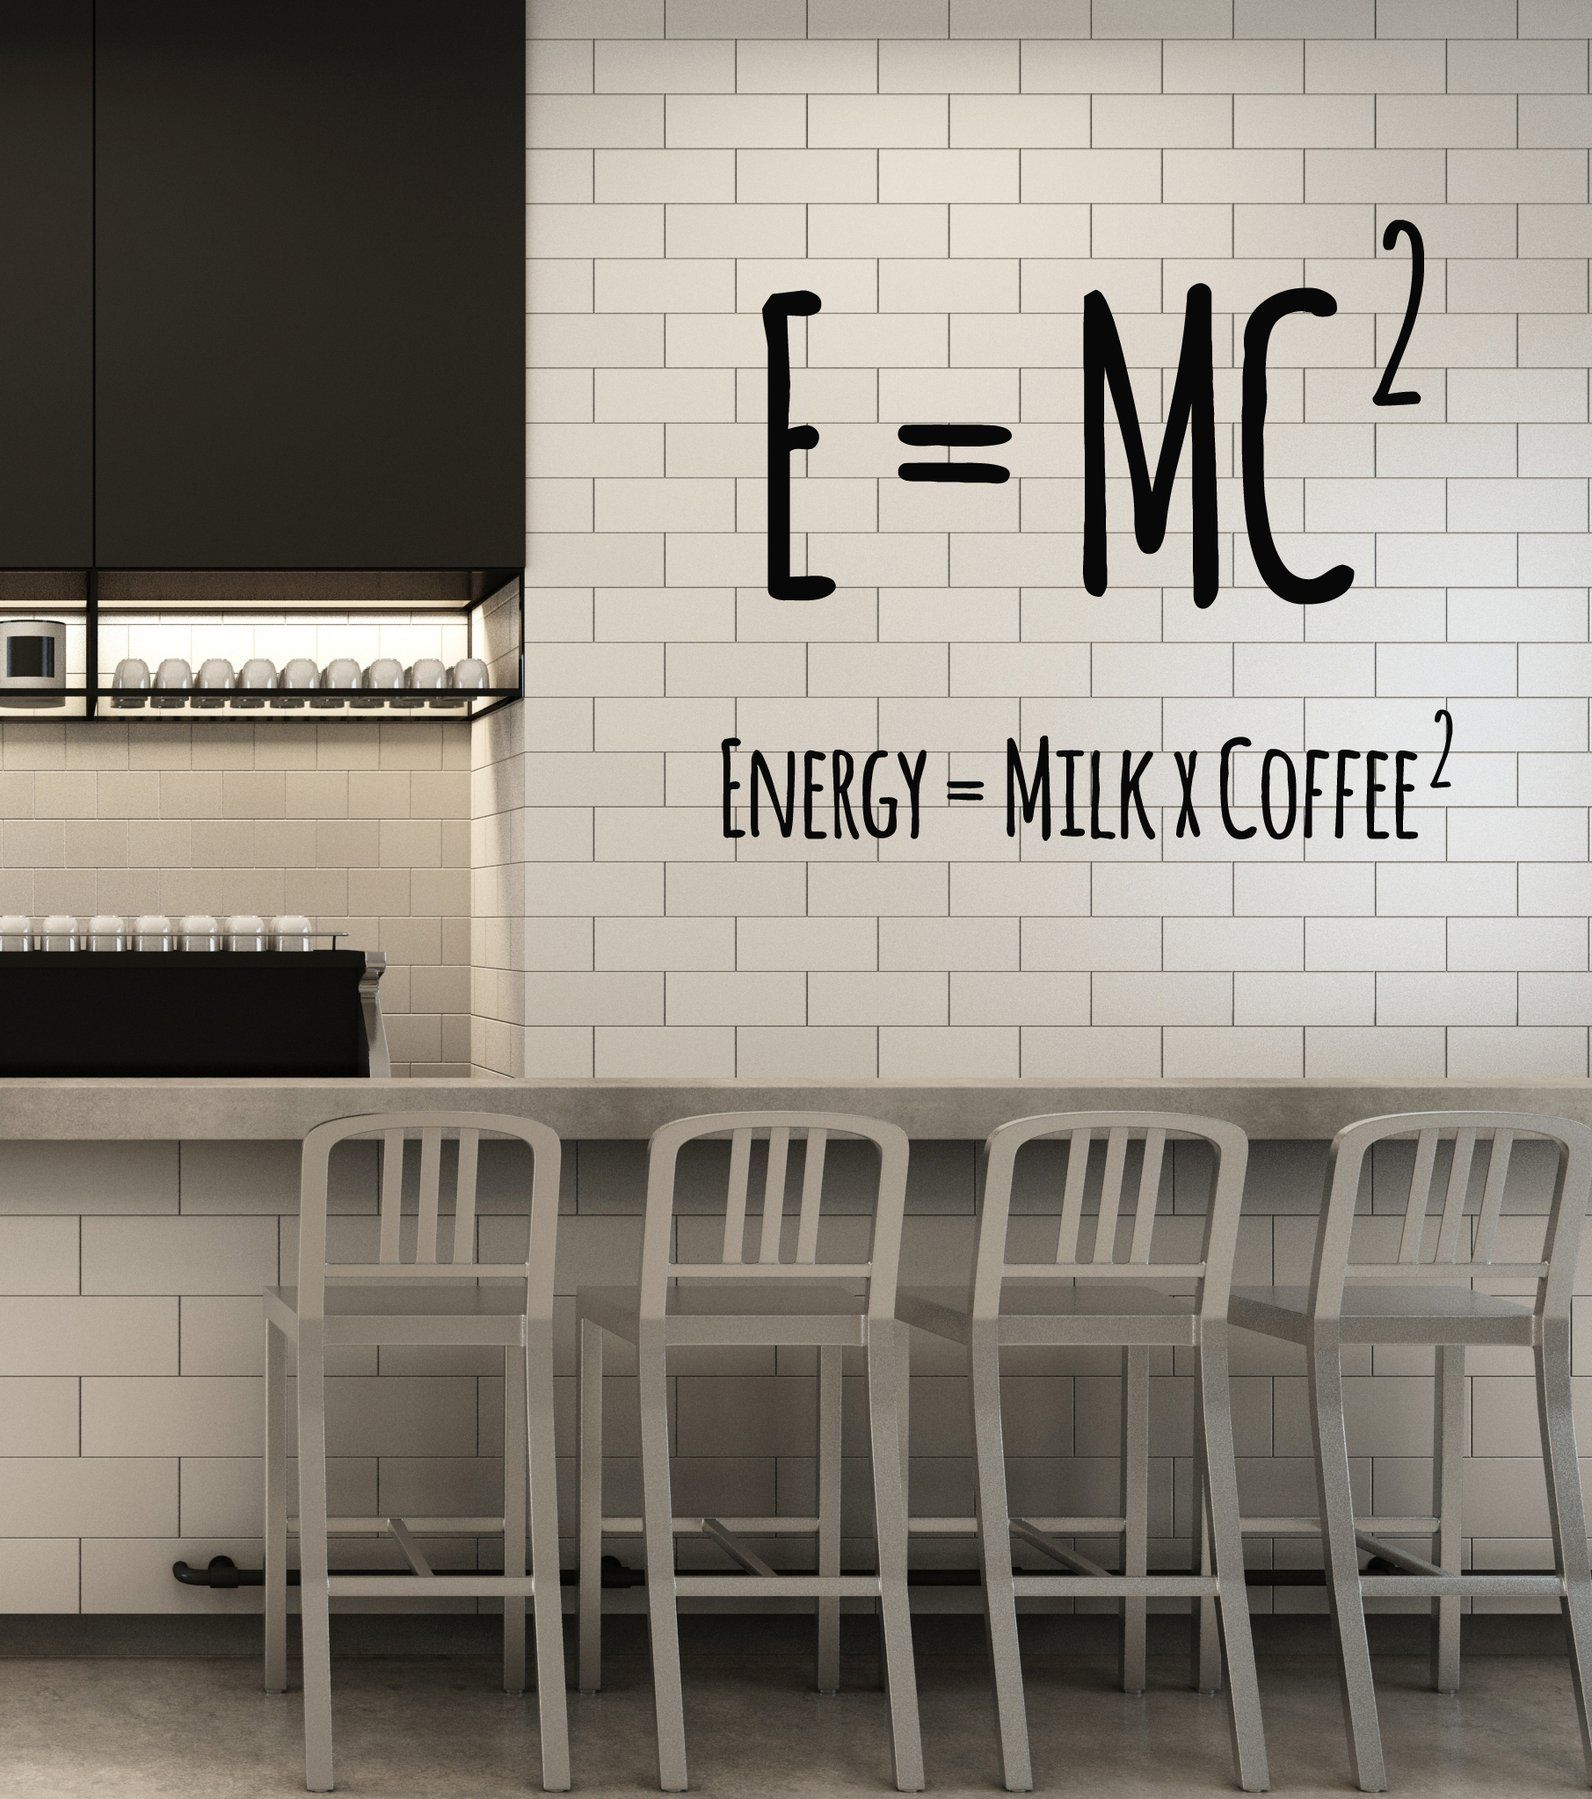 New Funny Art Vinyl Wall Decal Coffee Lover Physical Formula Funny Cafe Art Decor Stickers Mural (ig5392) Vinyl Wall Decal Coffee Lover Physical Formula Funny Cafe Art Decor St — Wallstickers4you 9